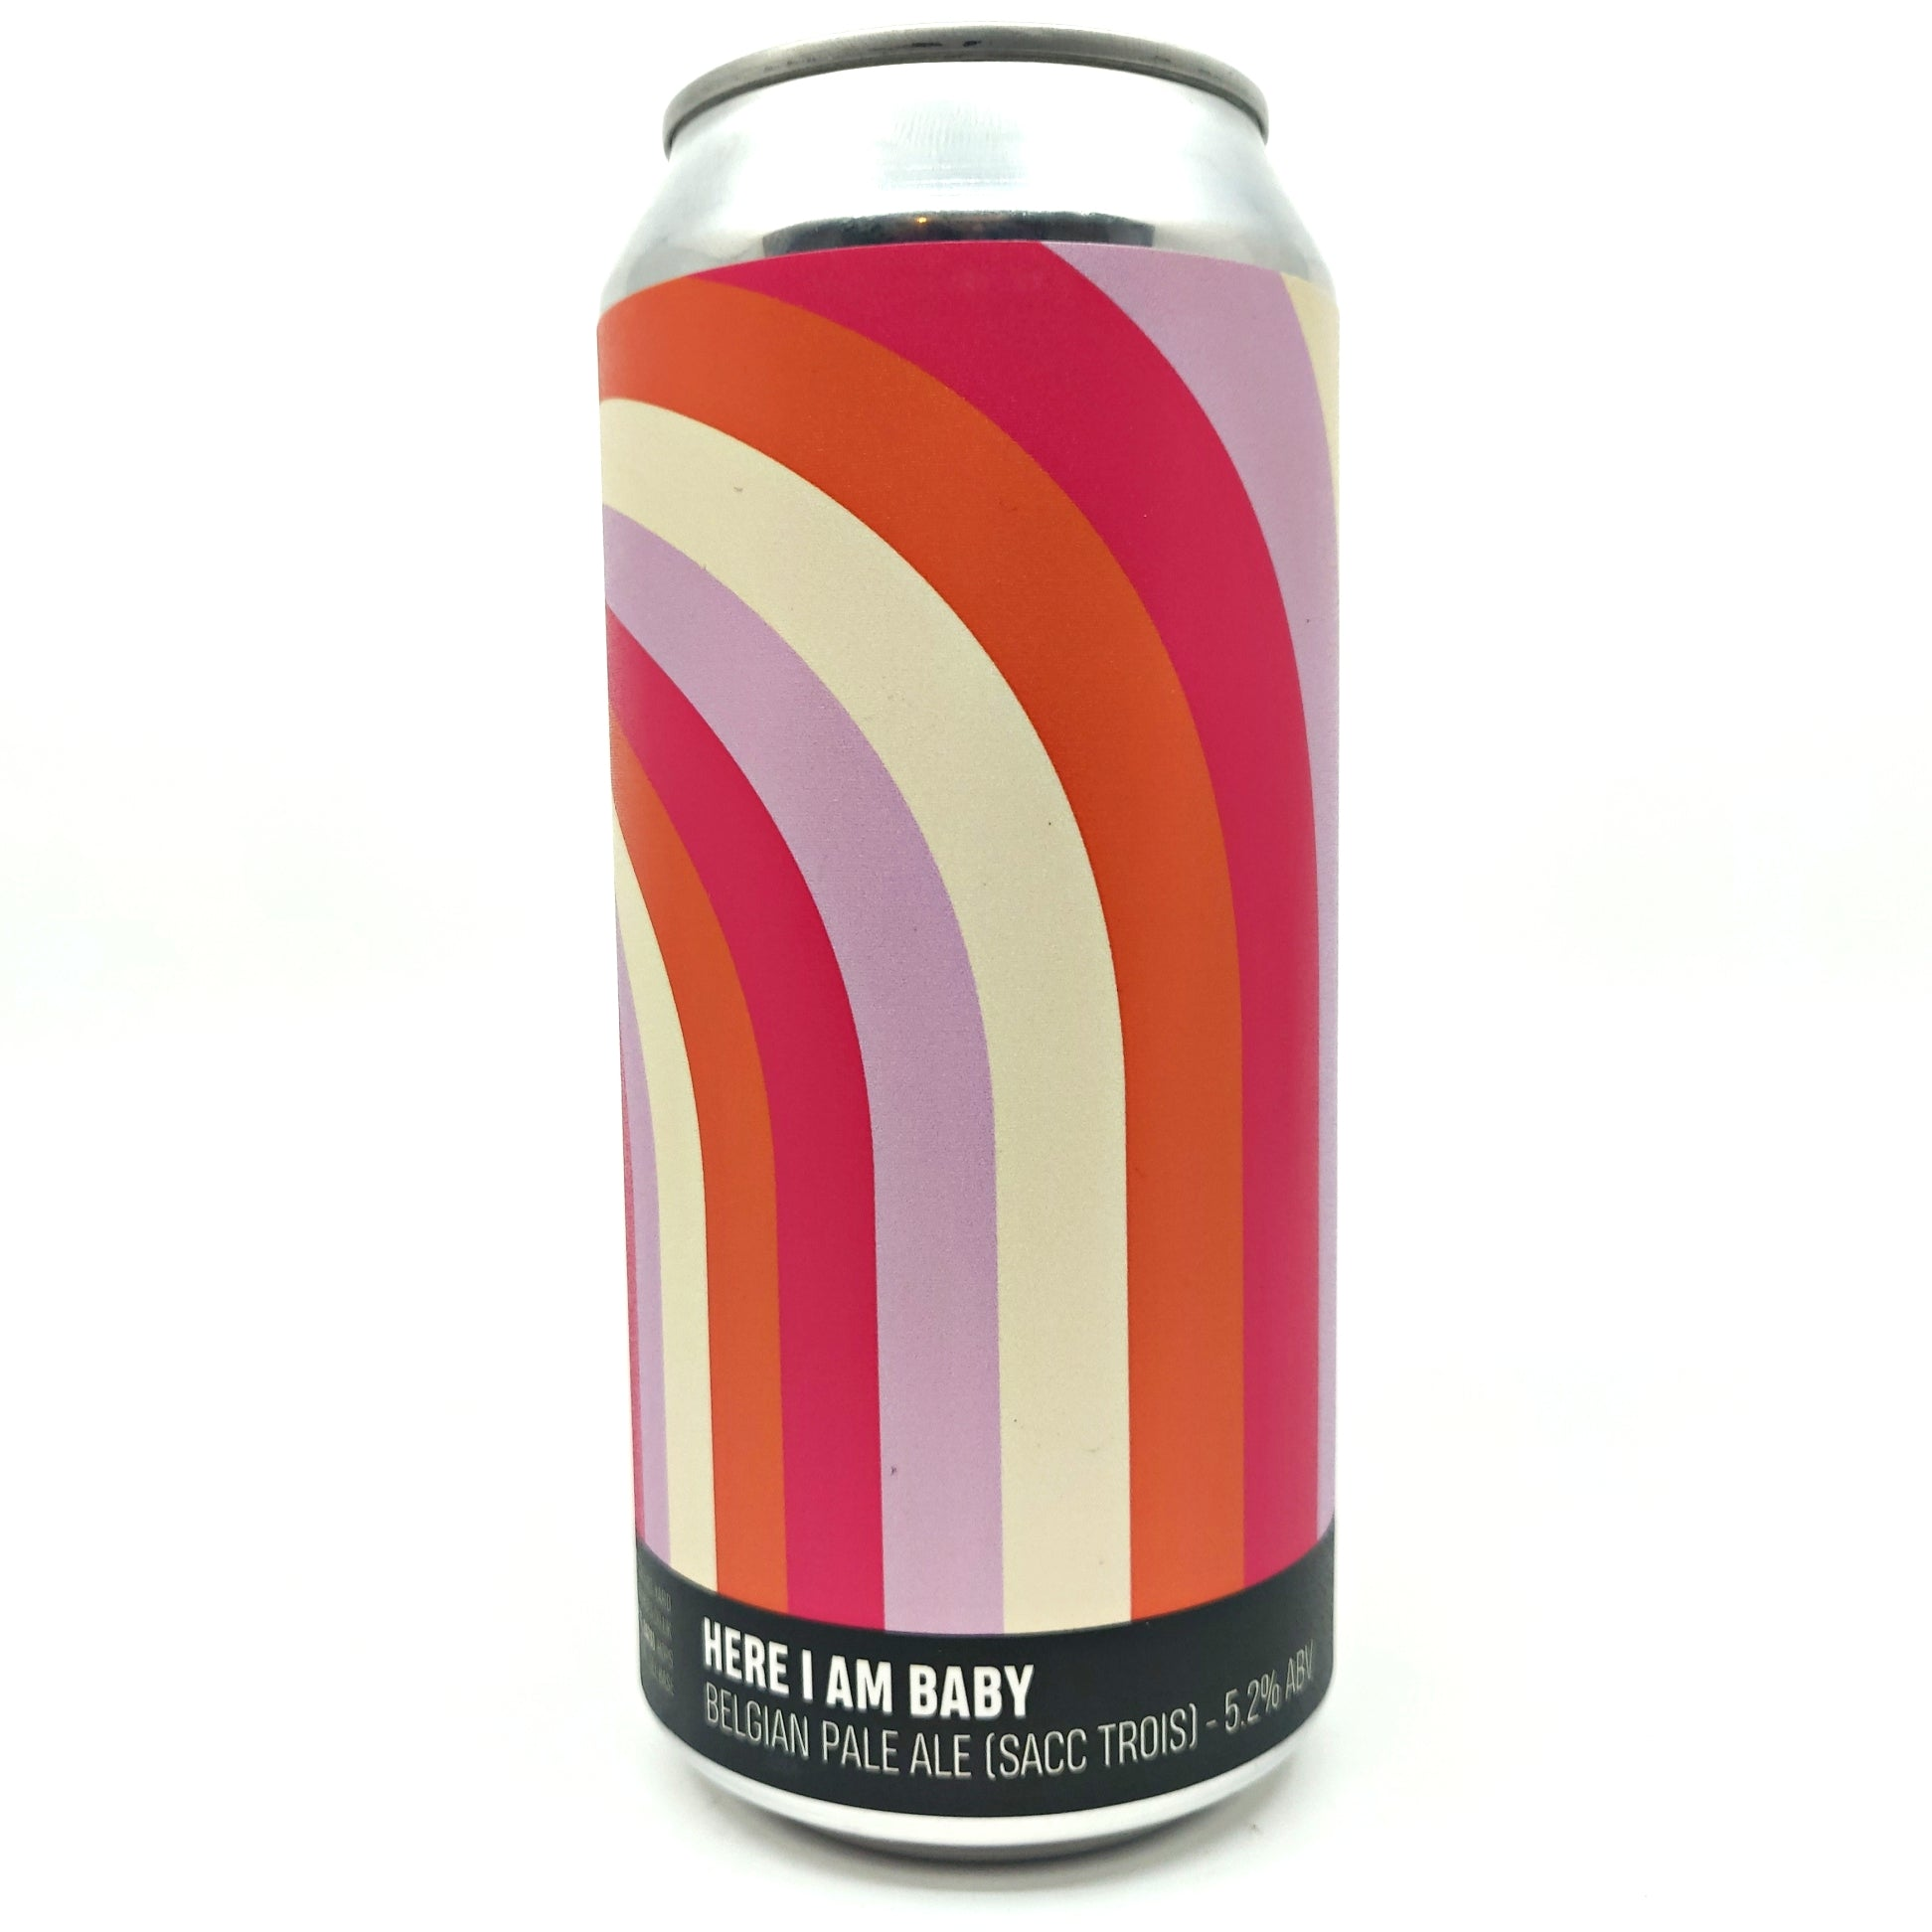 Howling Hops x Donzoko Here I Am Baby Belgian Pale Ale 5.2% (440ml can)-Hop Burns & Black